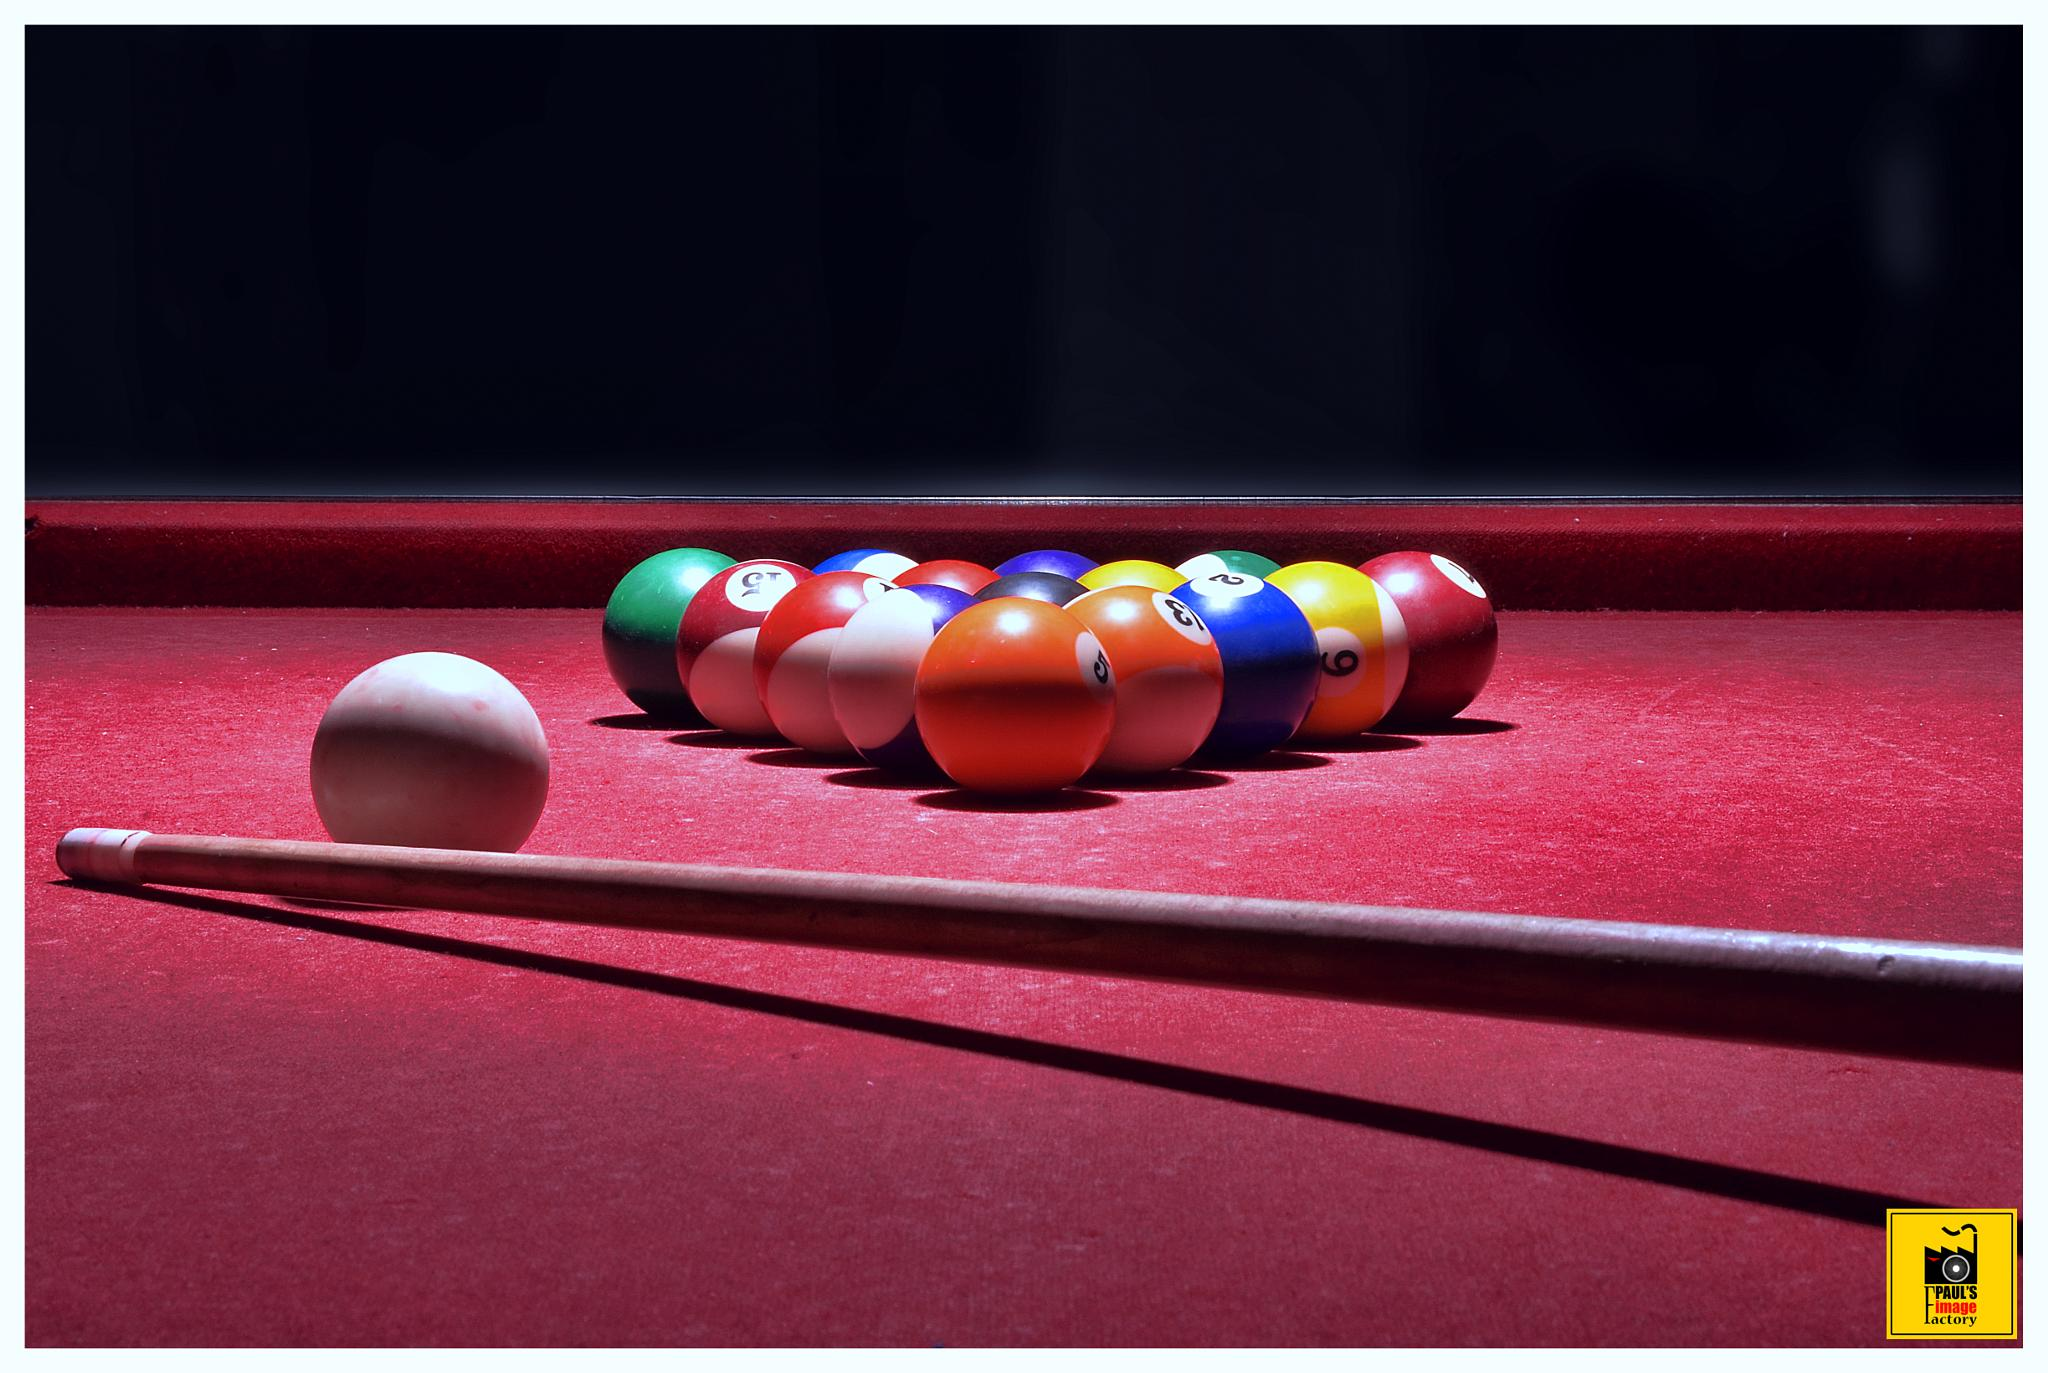 snooker by Paul Adrian Chis